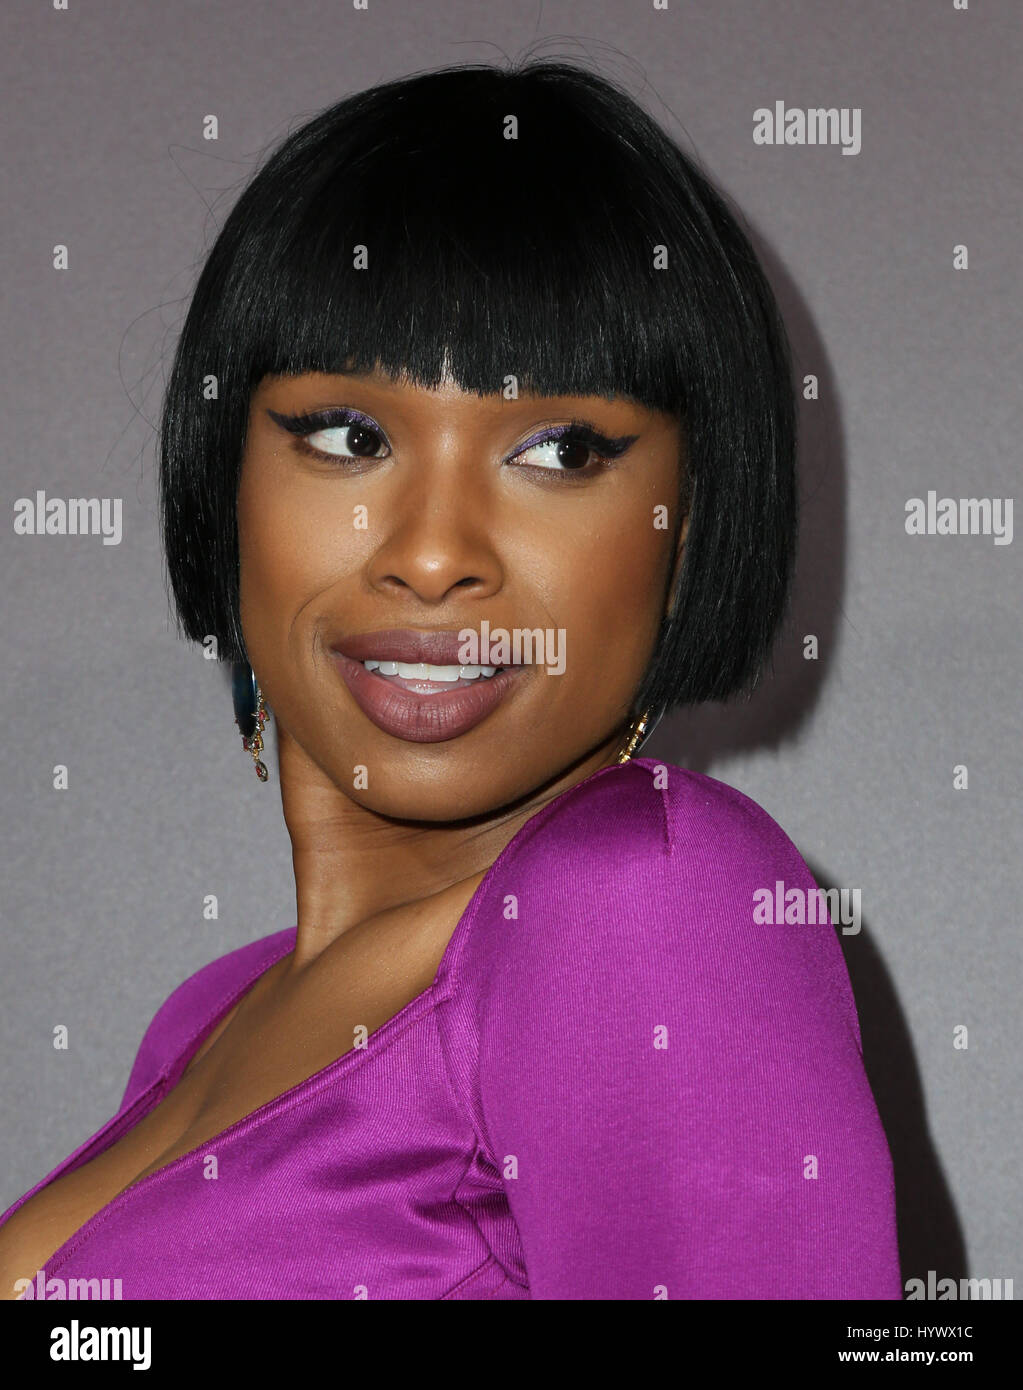 "Los Angeles, USA. 6. April 2017. Jennifer Hudson, die Premiere von Netflix ""Sandy Wexler"". Bildnachweis: Stockbild"